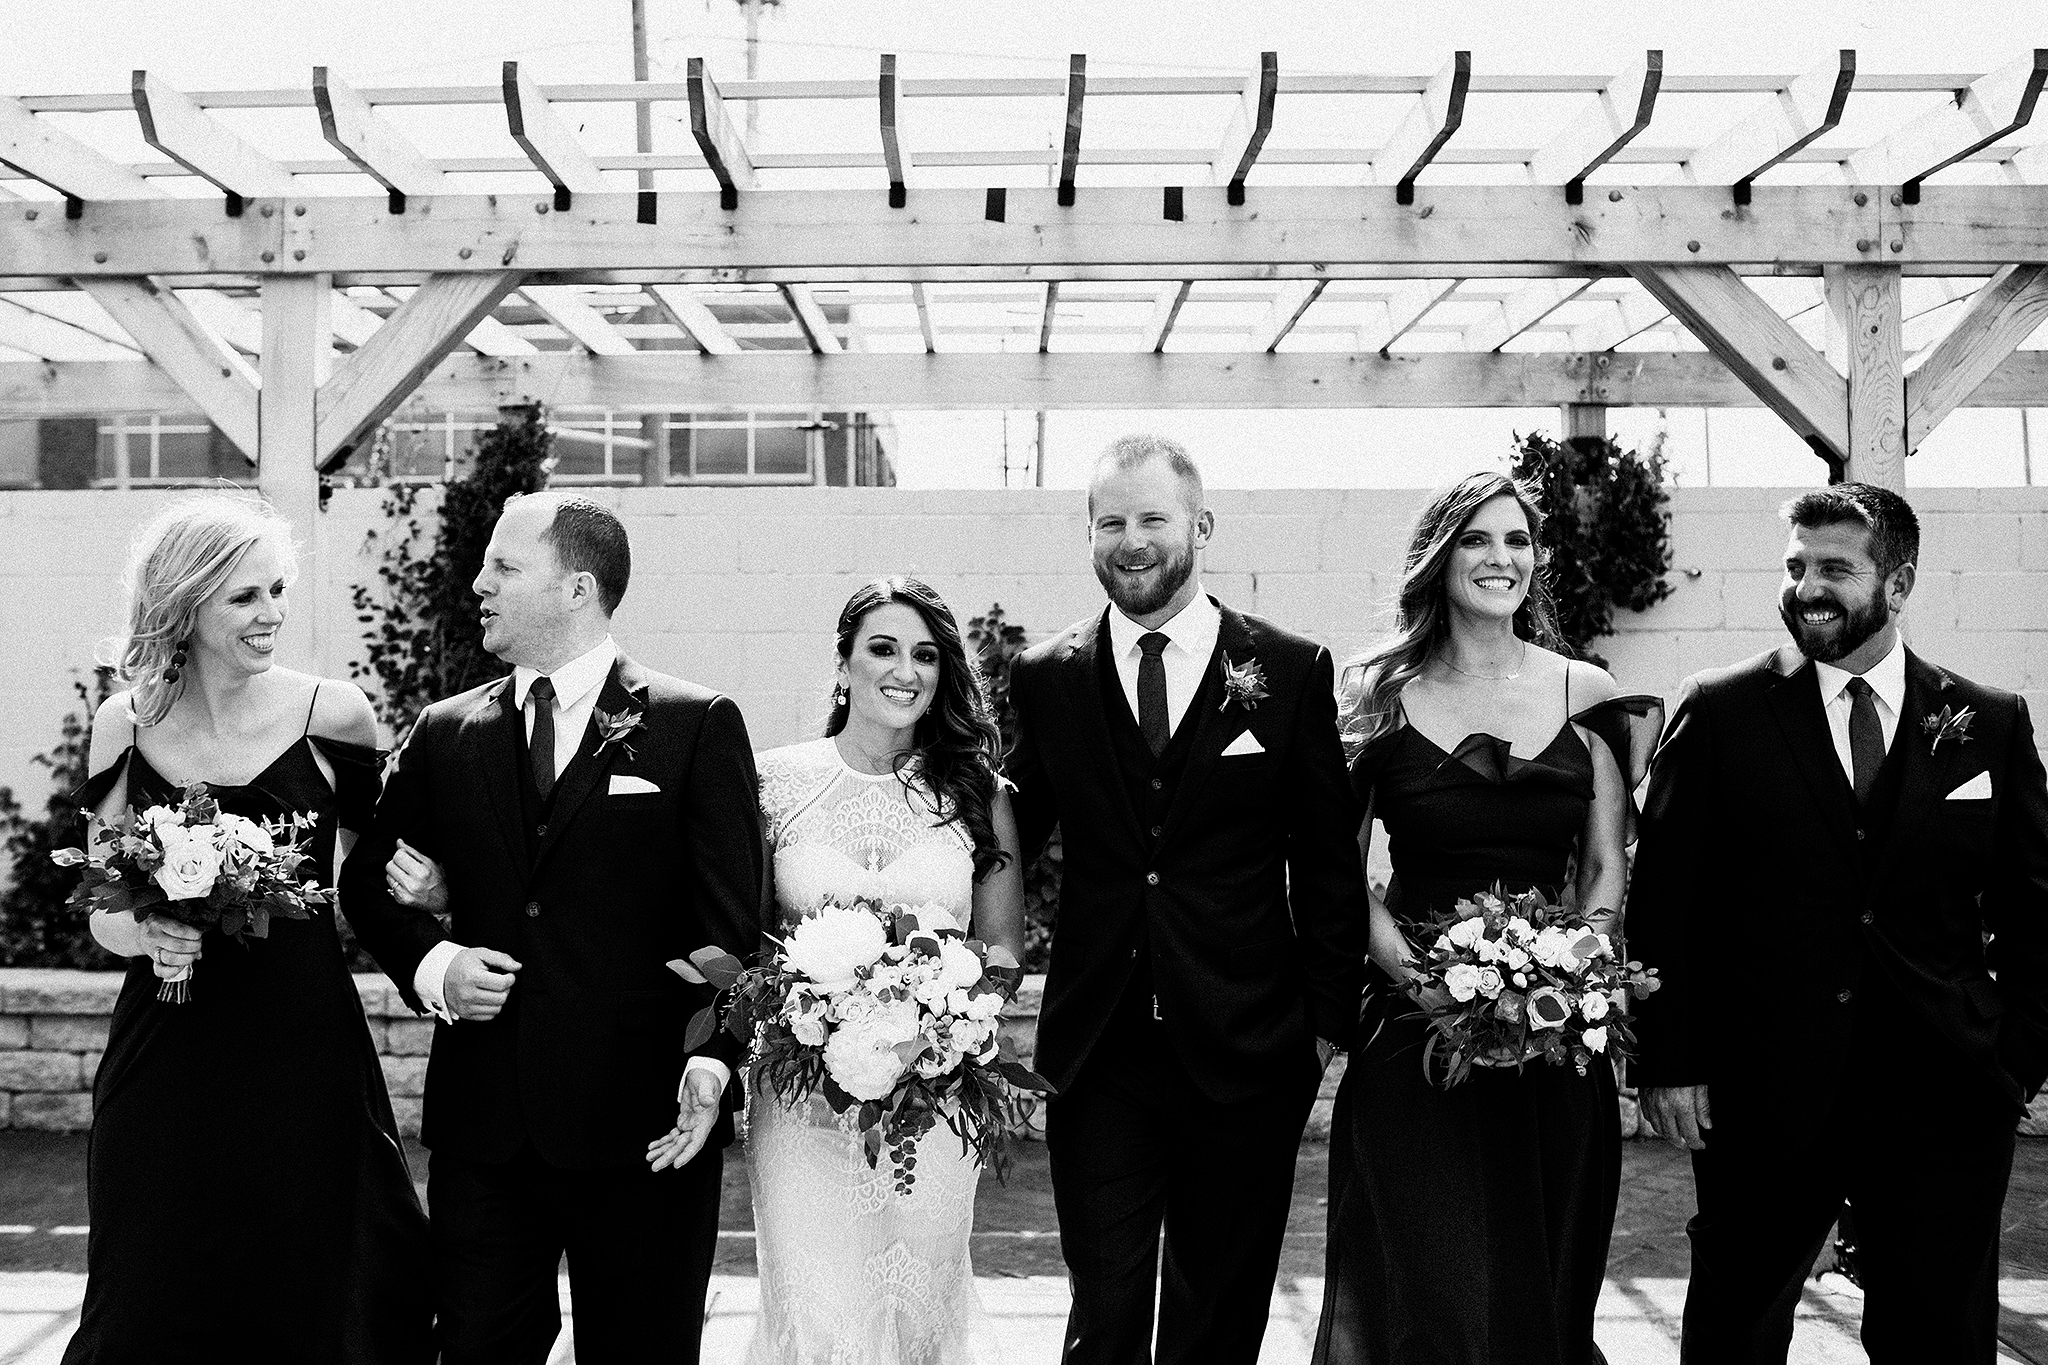 wedding party walking and laughing | the ivy house milwaukee wedding photographer | chrissy deming